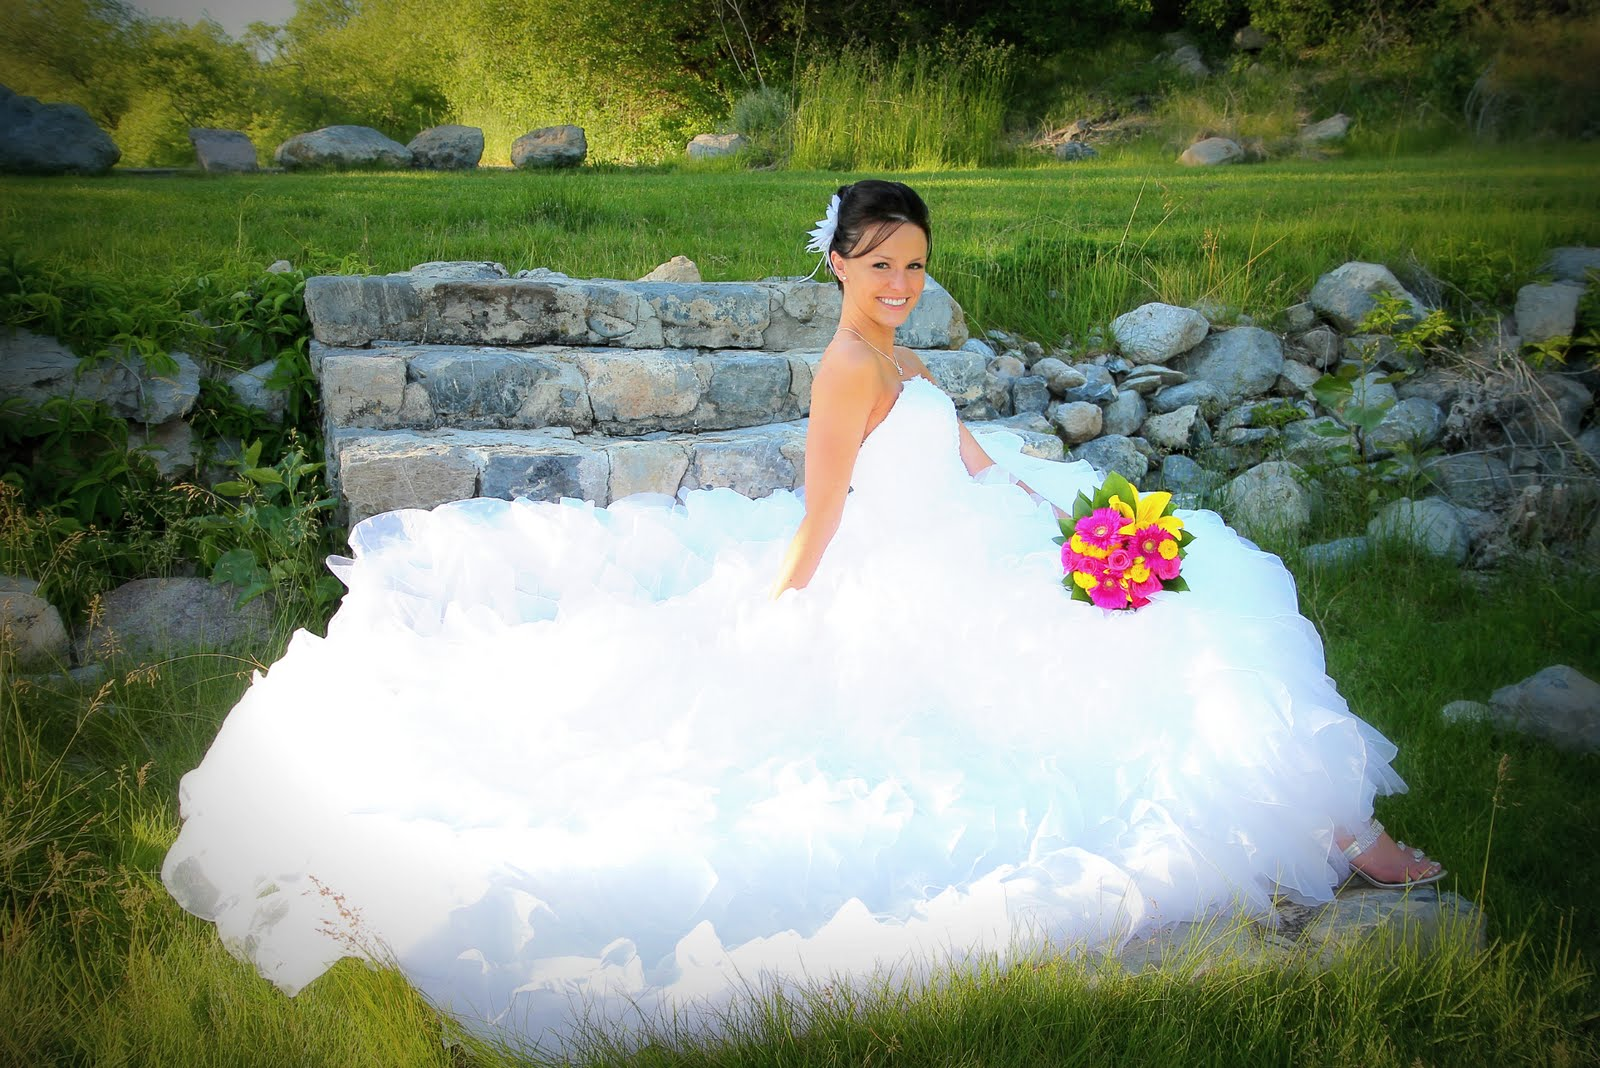 Wedding Dresses Spanish Fork Utah : Spanish fork photography cheapshots family and wedding utah bridal